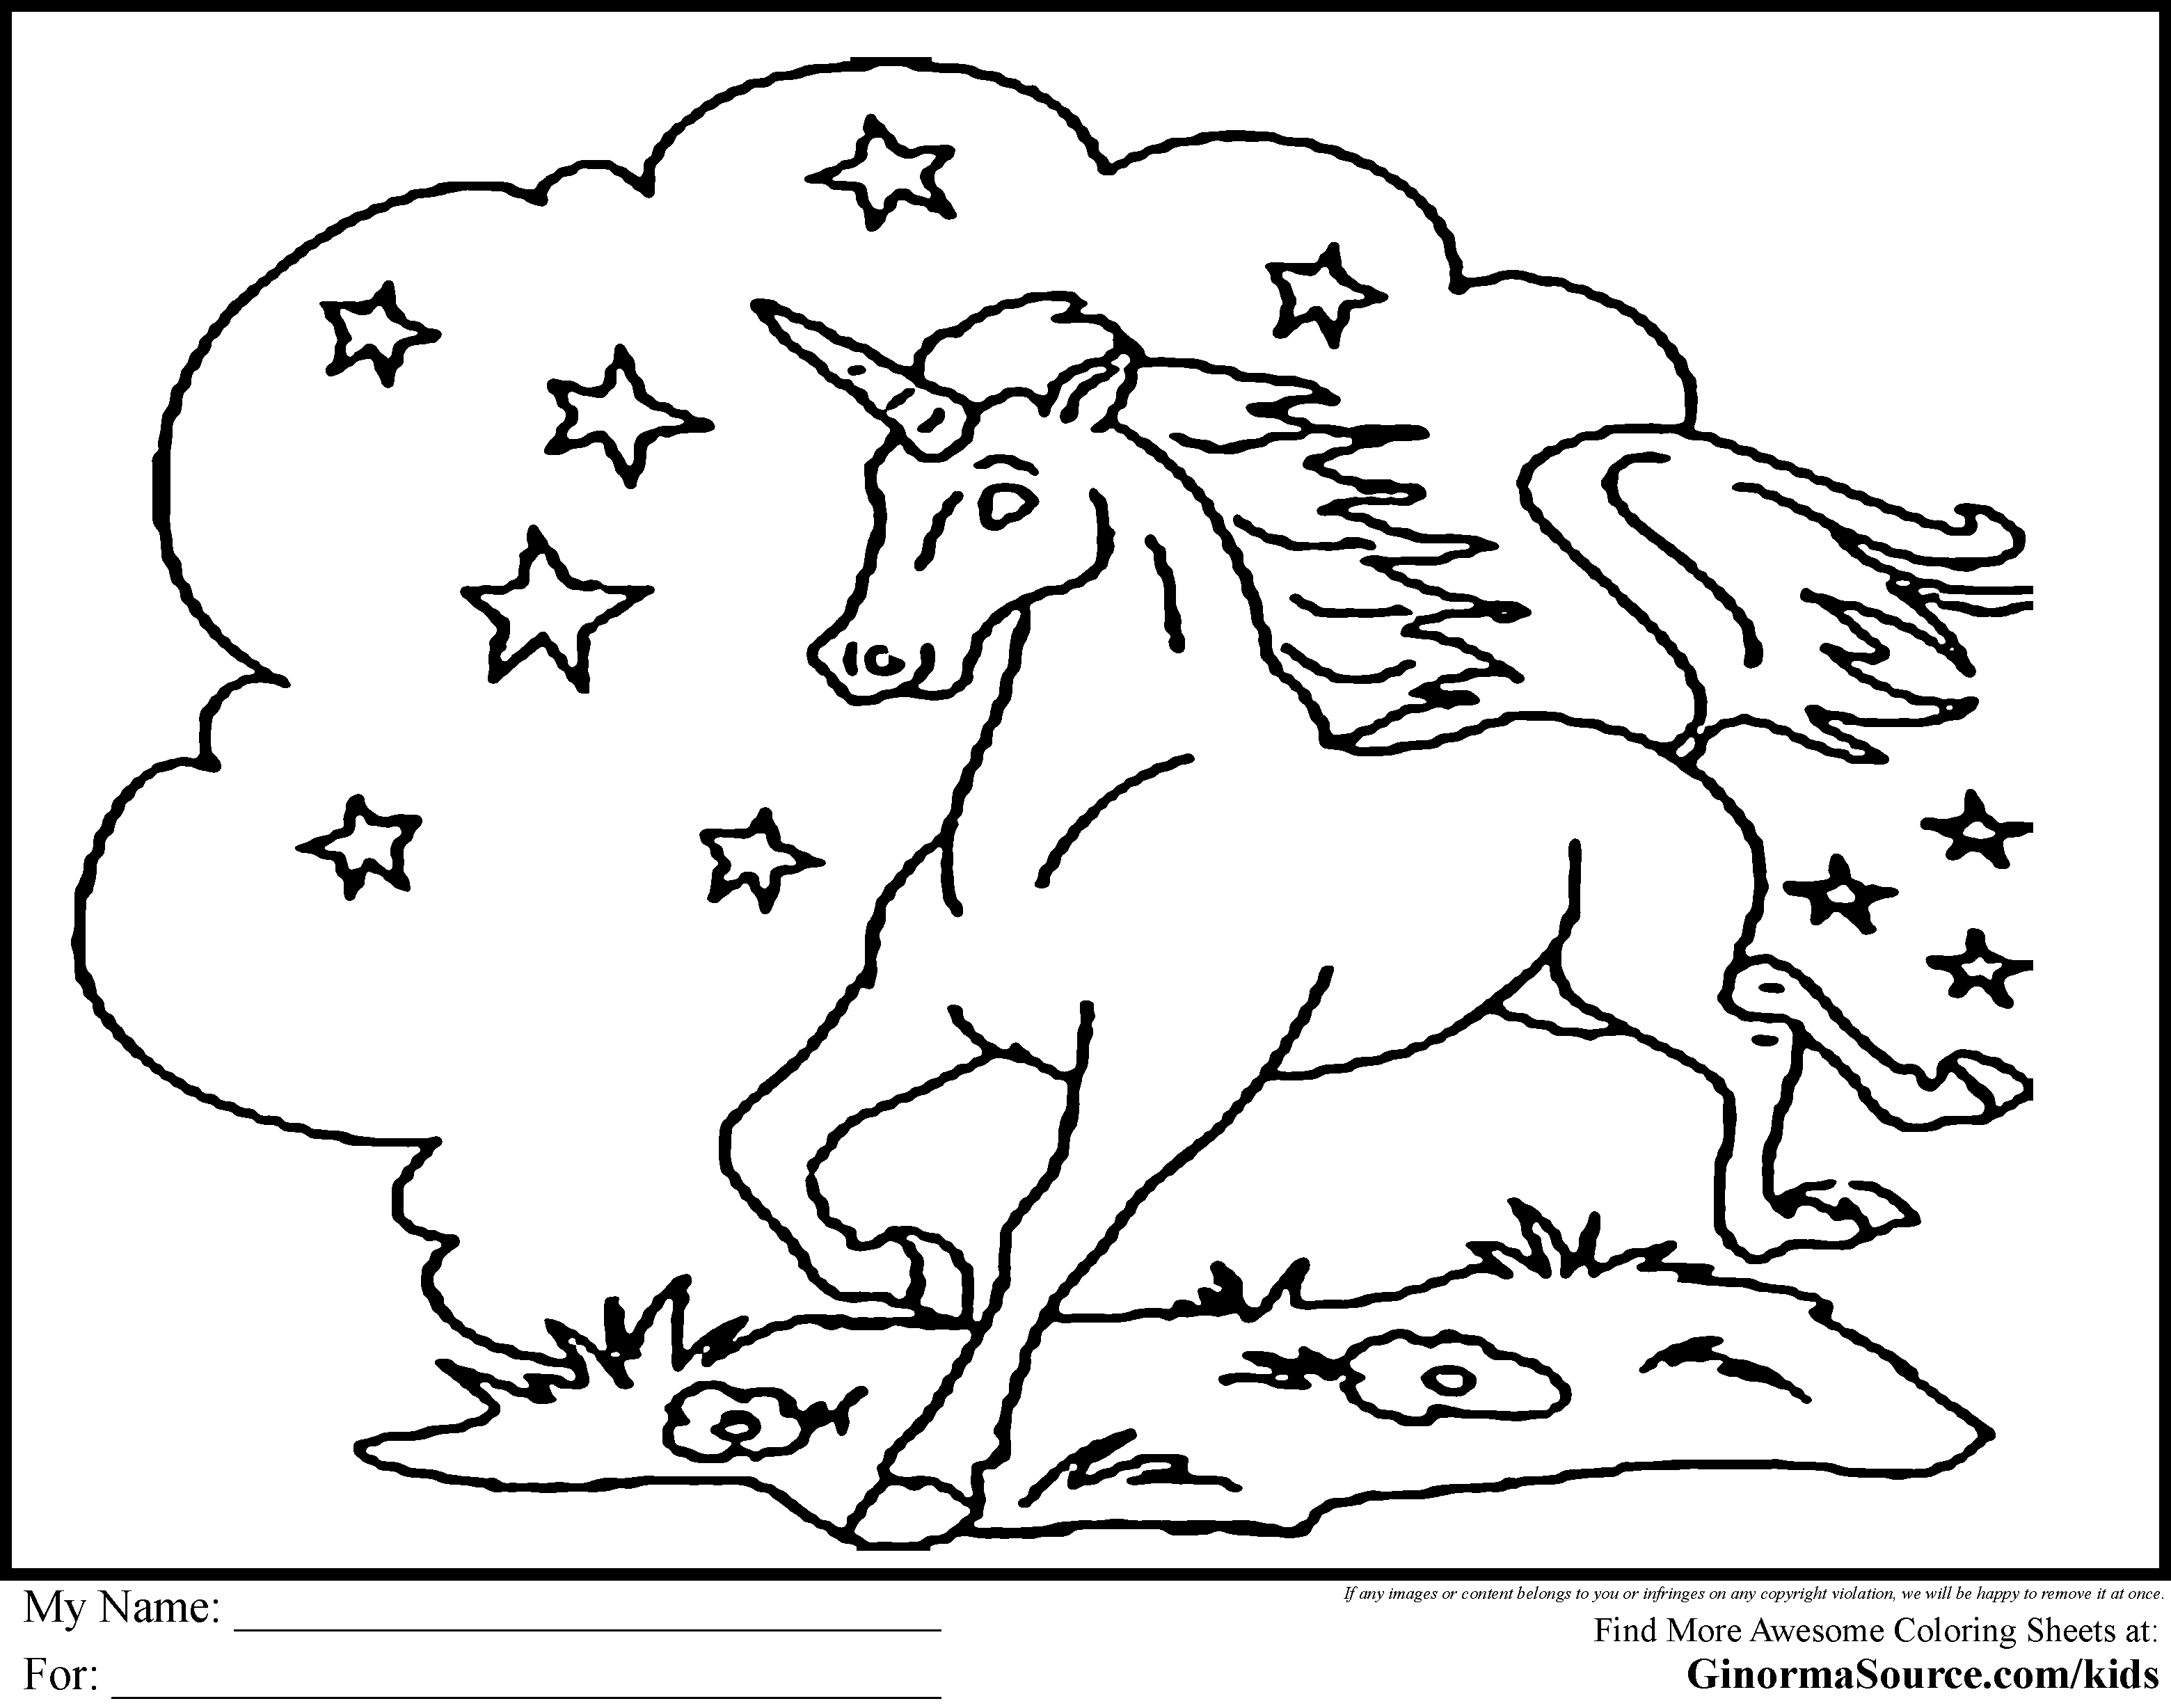 Google Coloring Pages Free Large Images Unicorn Coloring Pages Horse Coloring Pages Sun Coloring Pages